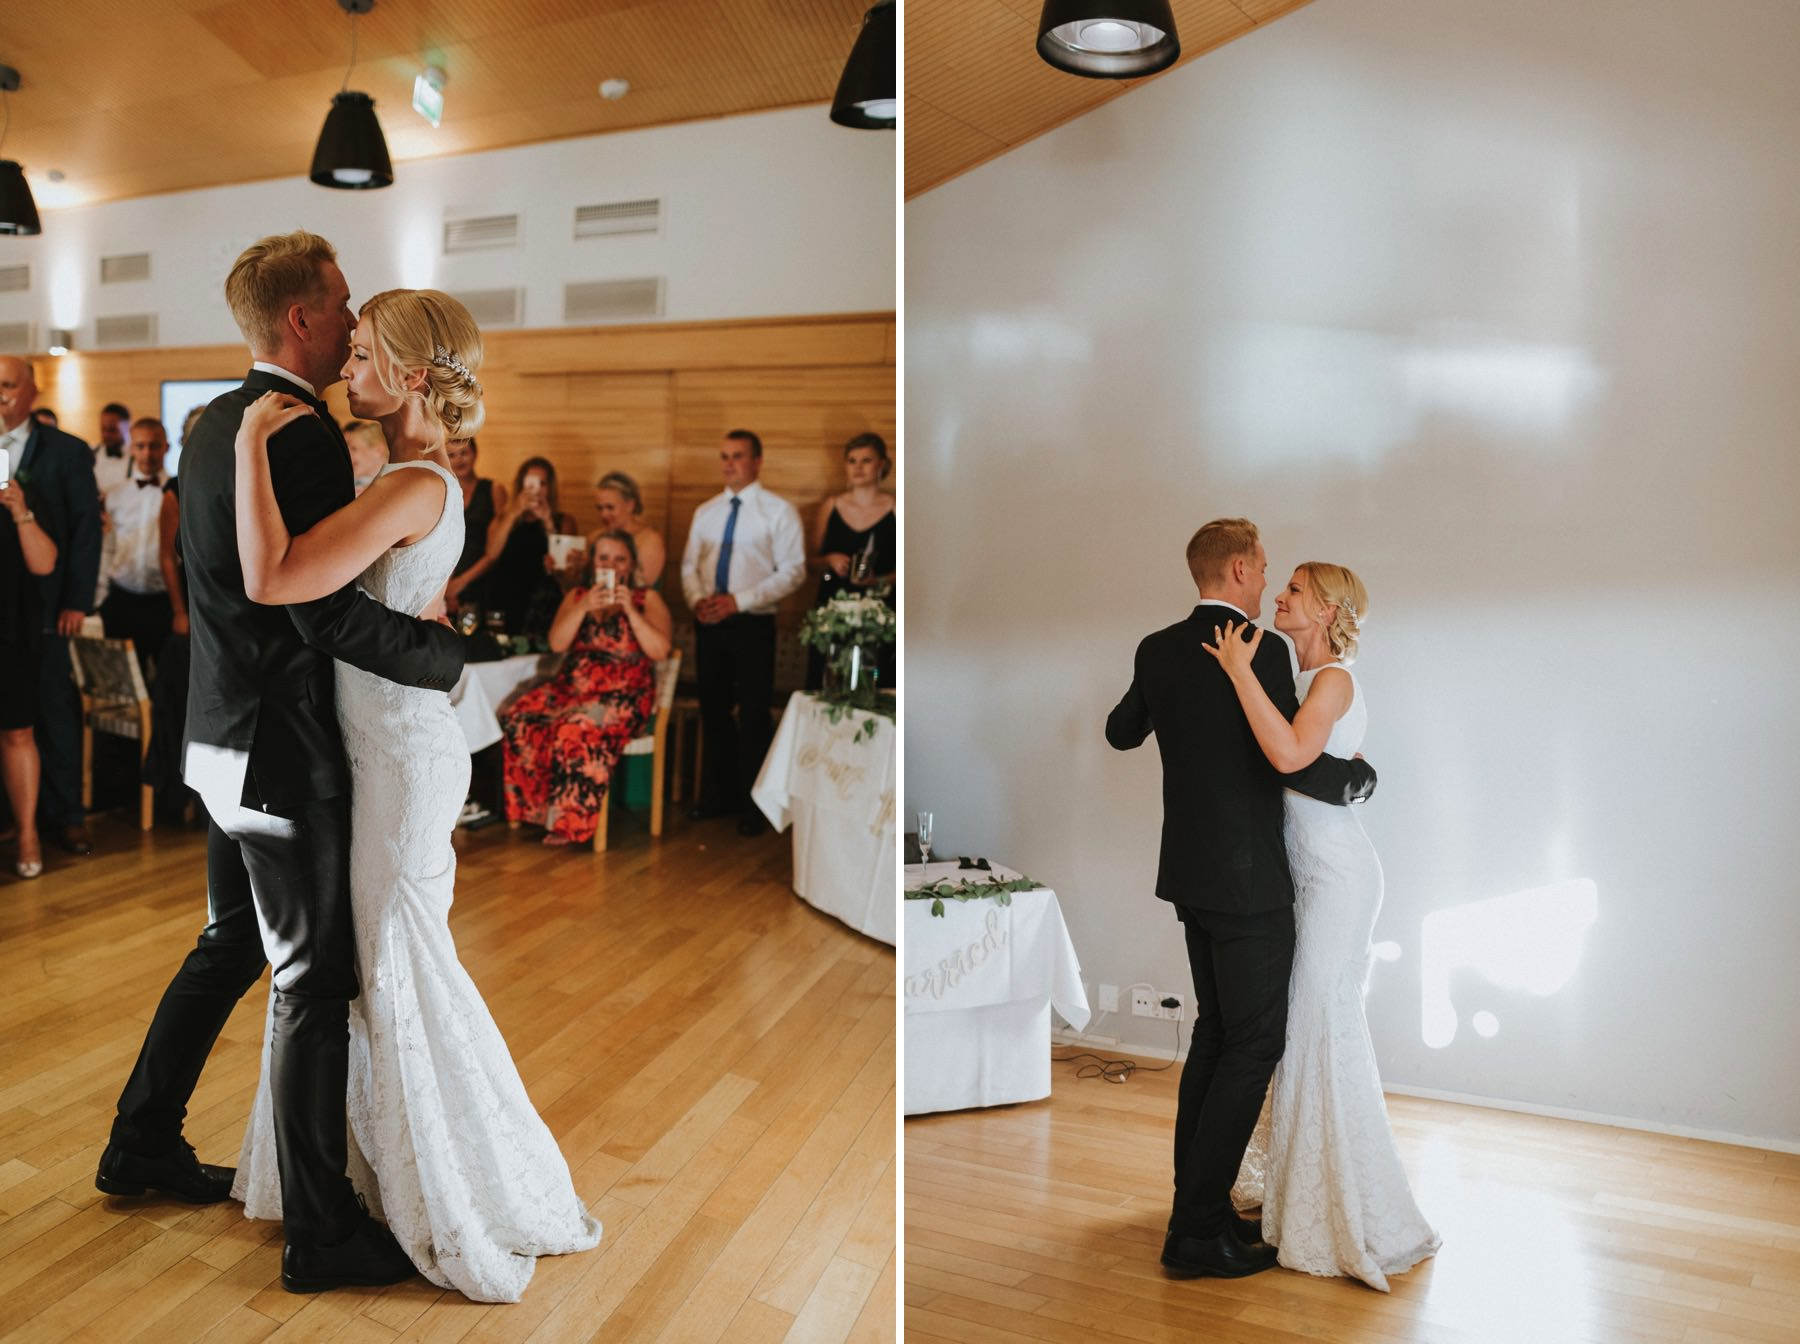 Helmiranta Finnish wedding